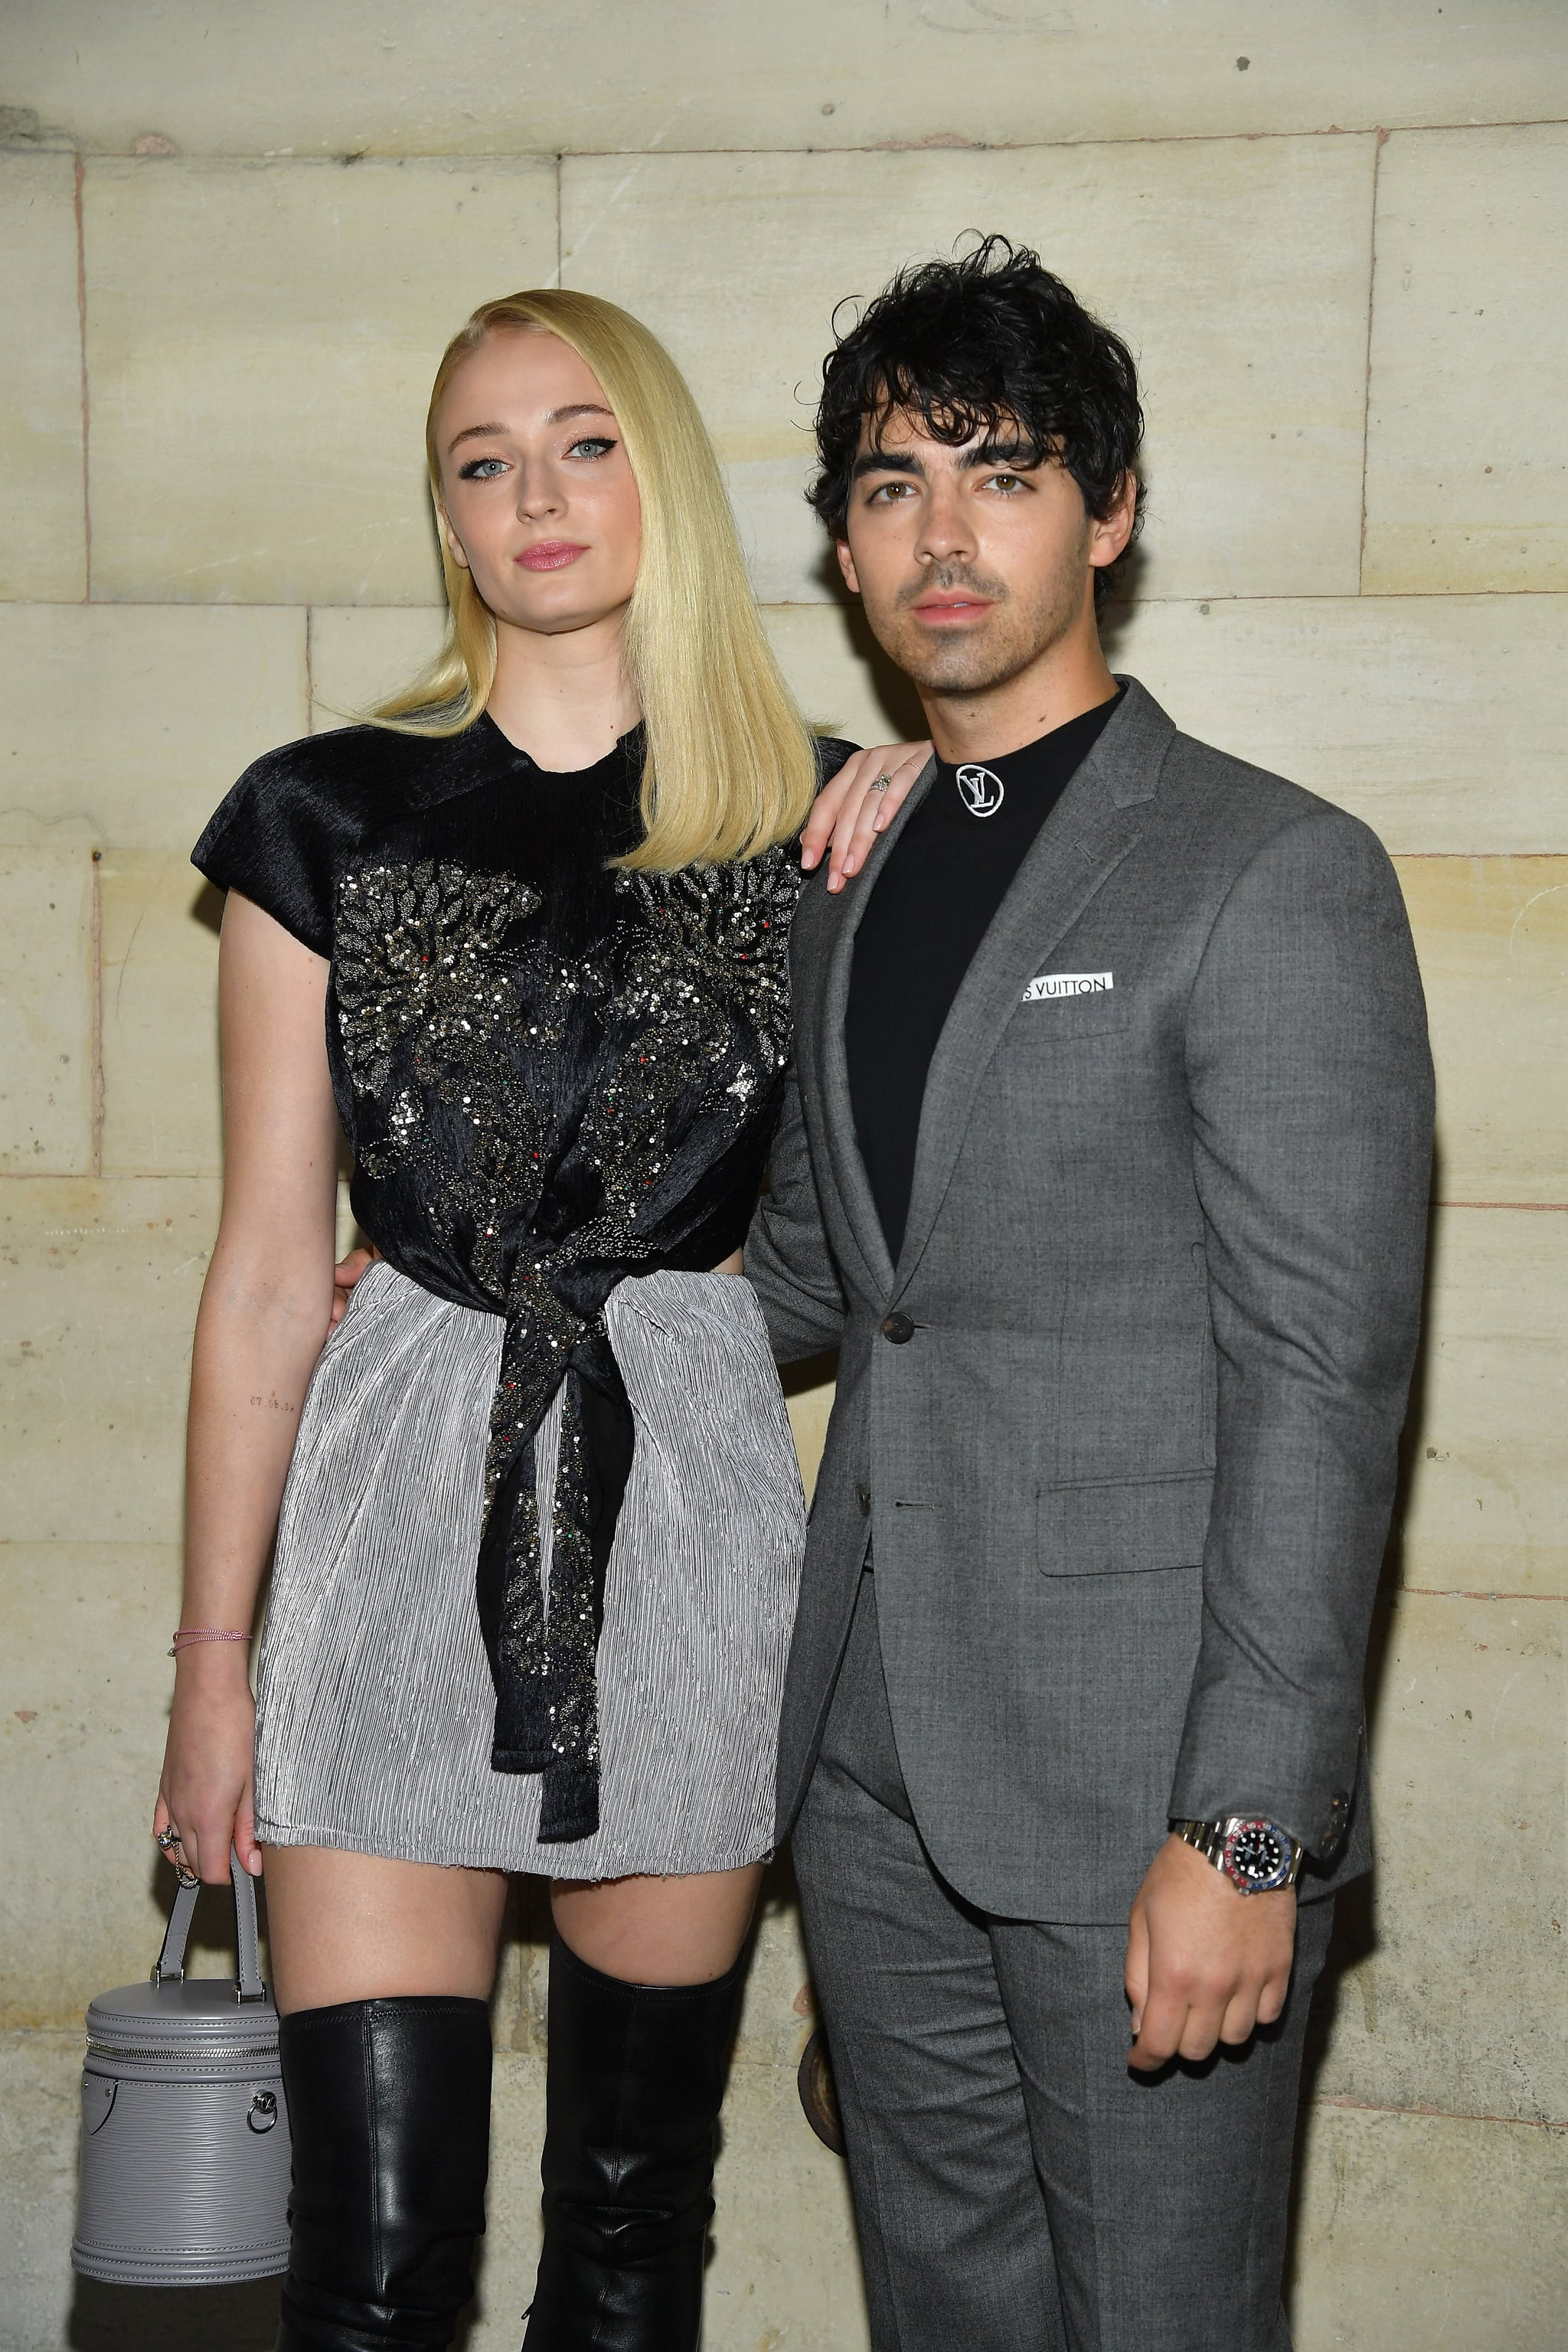 PARIS, FRANCE - OCTOBER 02:  Sophie Turner and  Joe Jonas attend the Louis Vuitton show as part of the Paris Fashion Week Womenswear Spring/Summer 2019 on October 2, 2018 in Paris, France.  (Photo by Pascal Le Segretain/Getty Images)